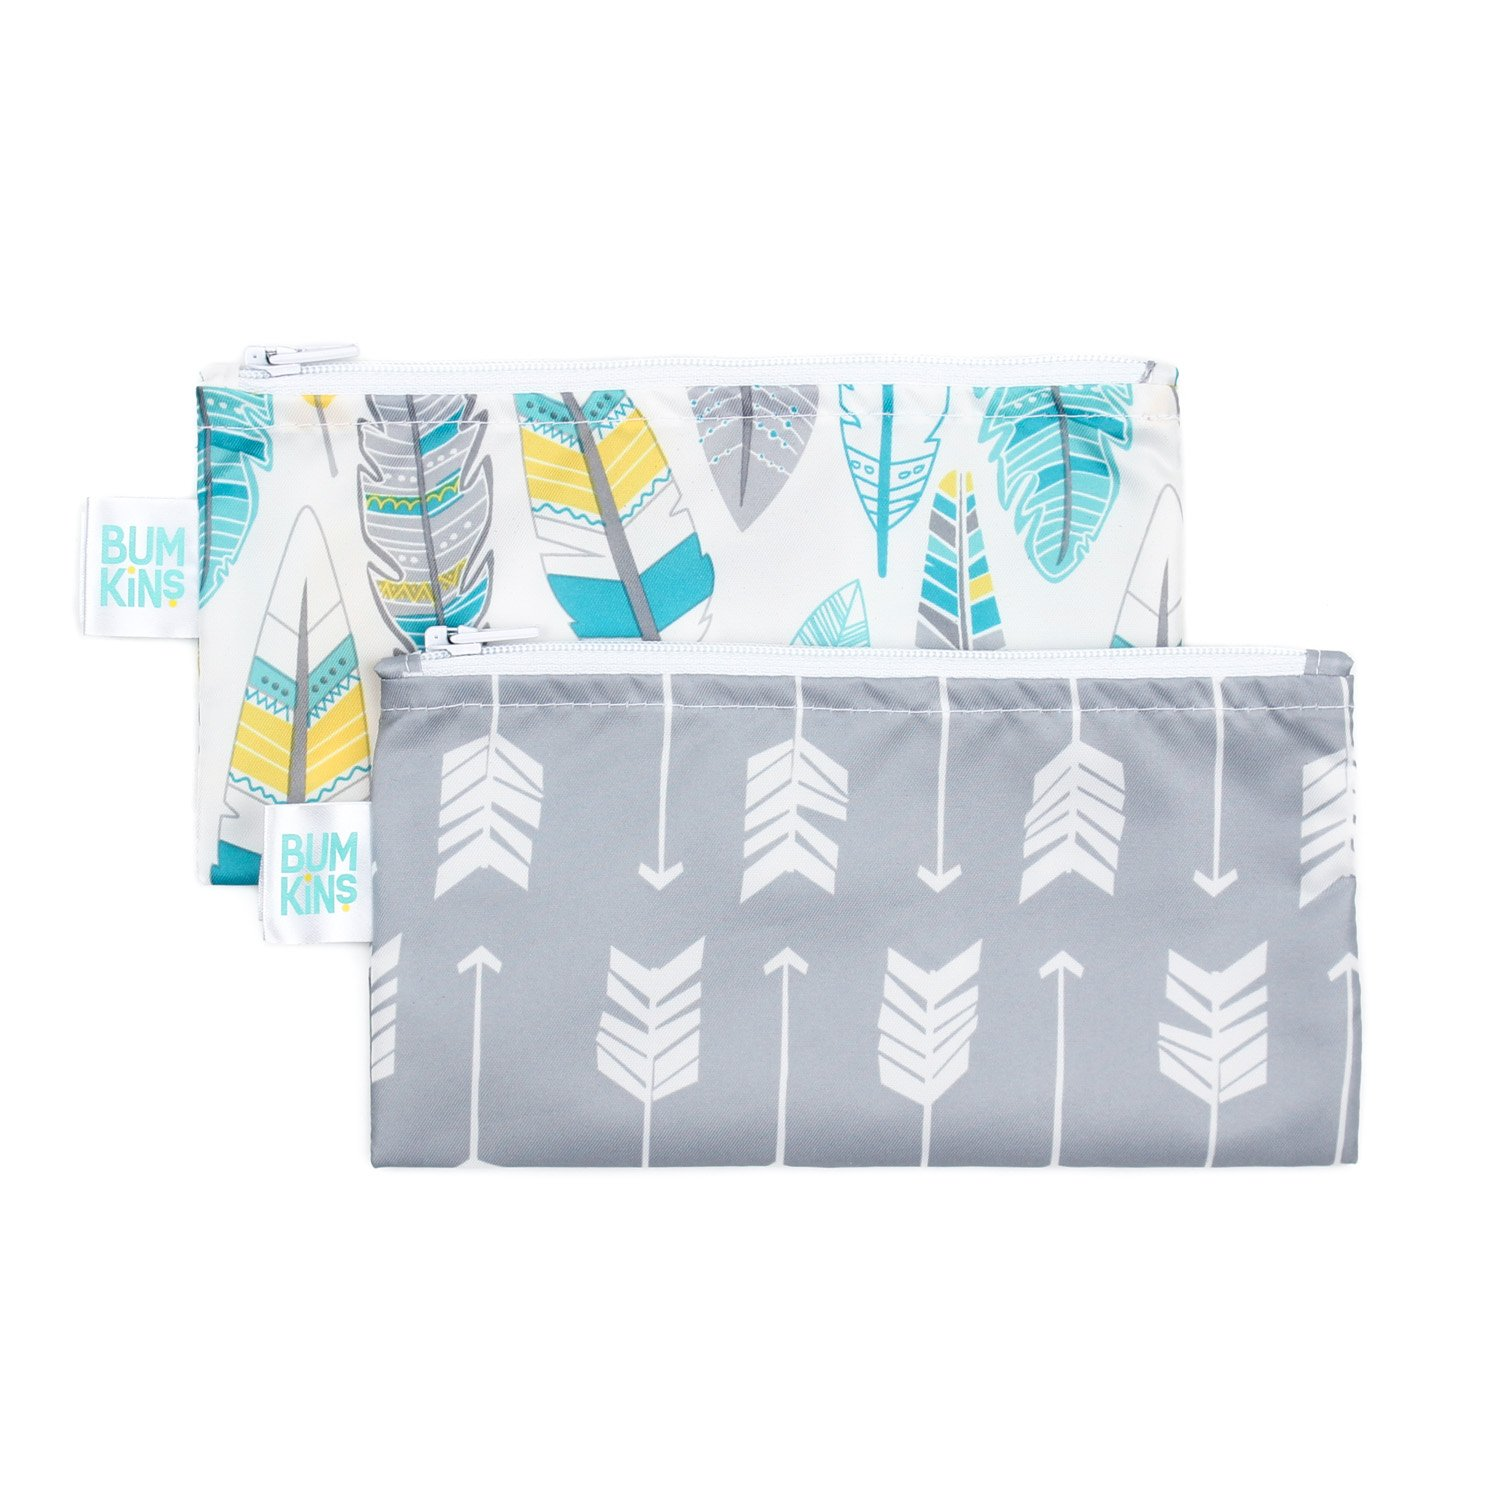 Bumkins Reusable Snack Bag Small 2 Pack, Arrow/Feather SBS2-N12